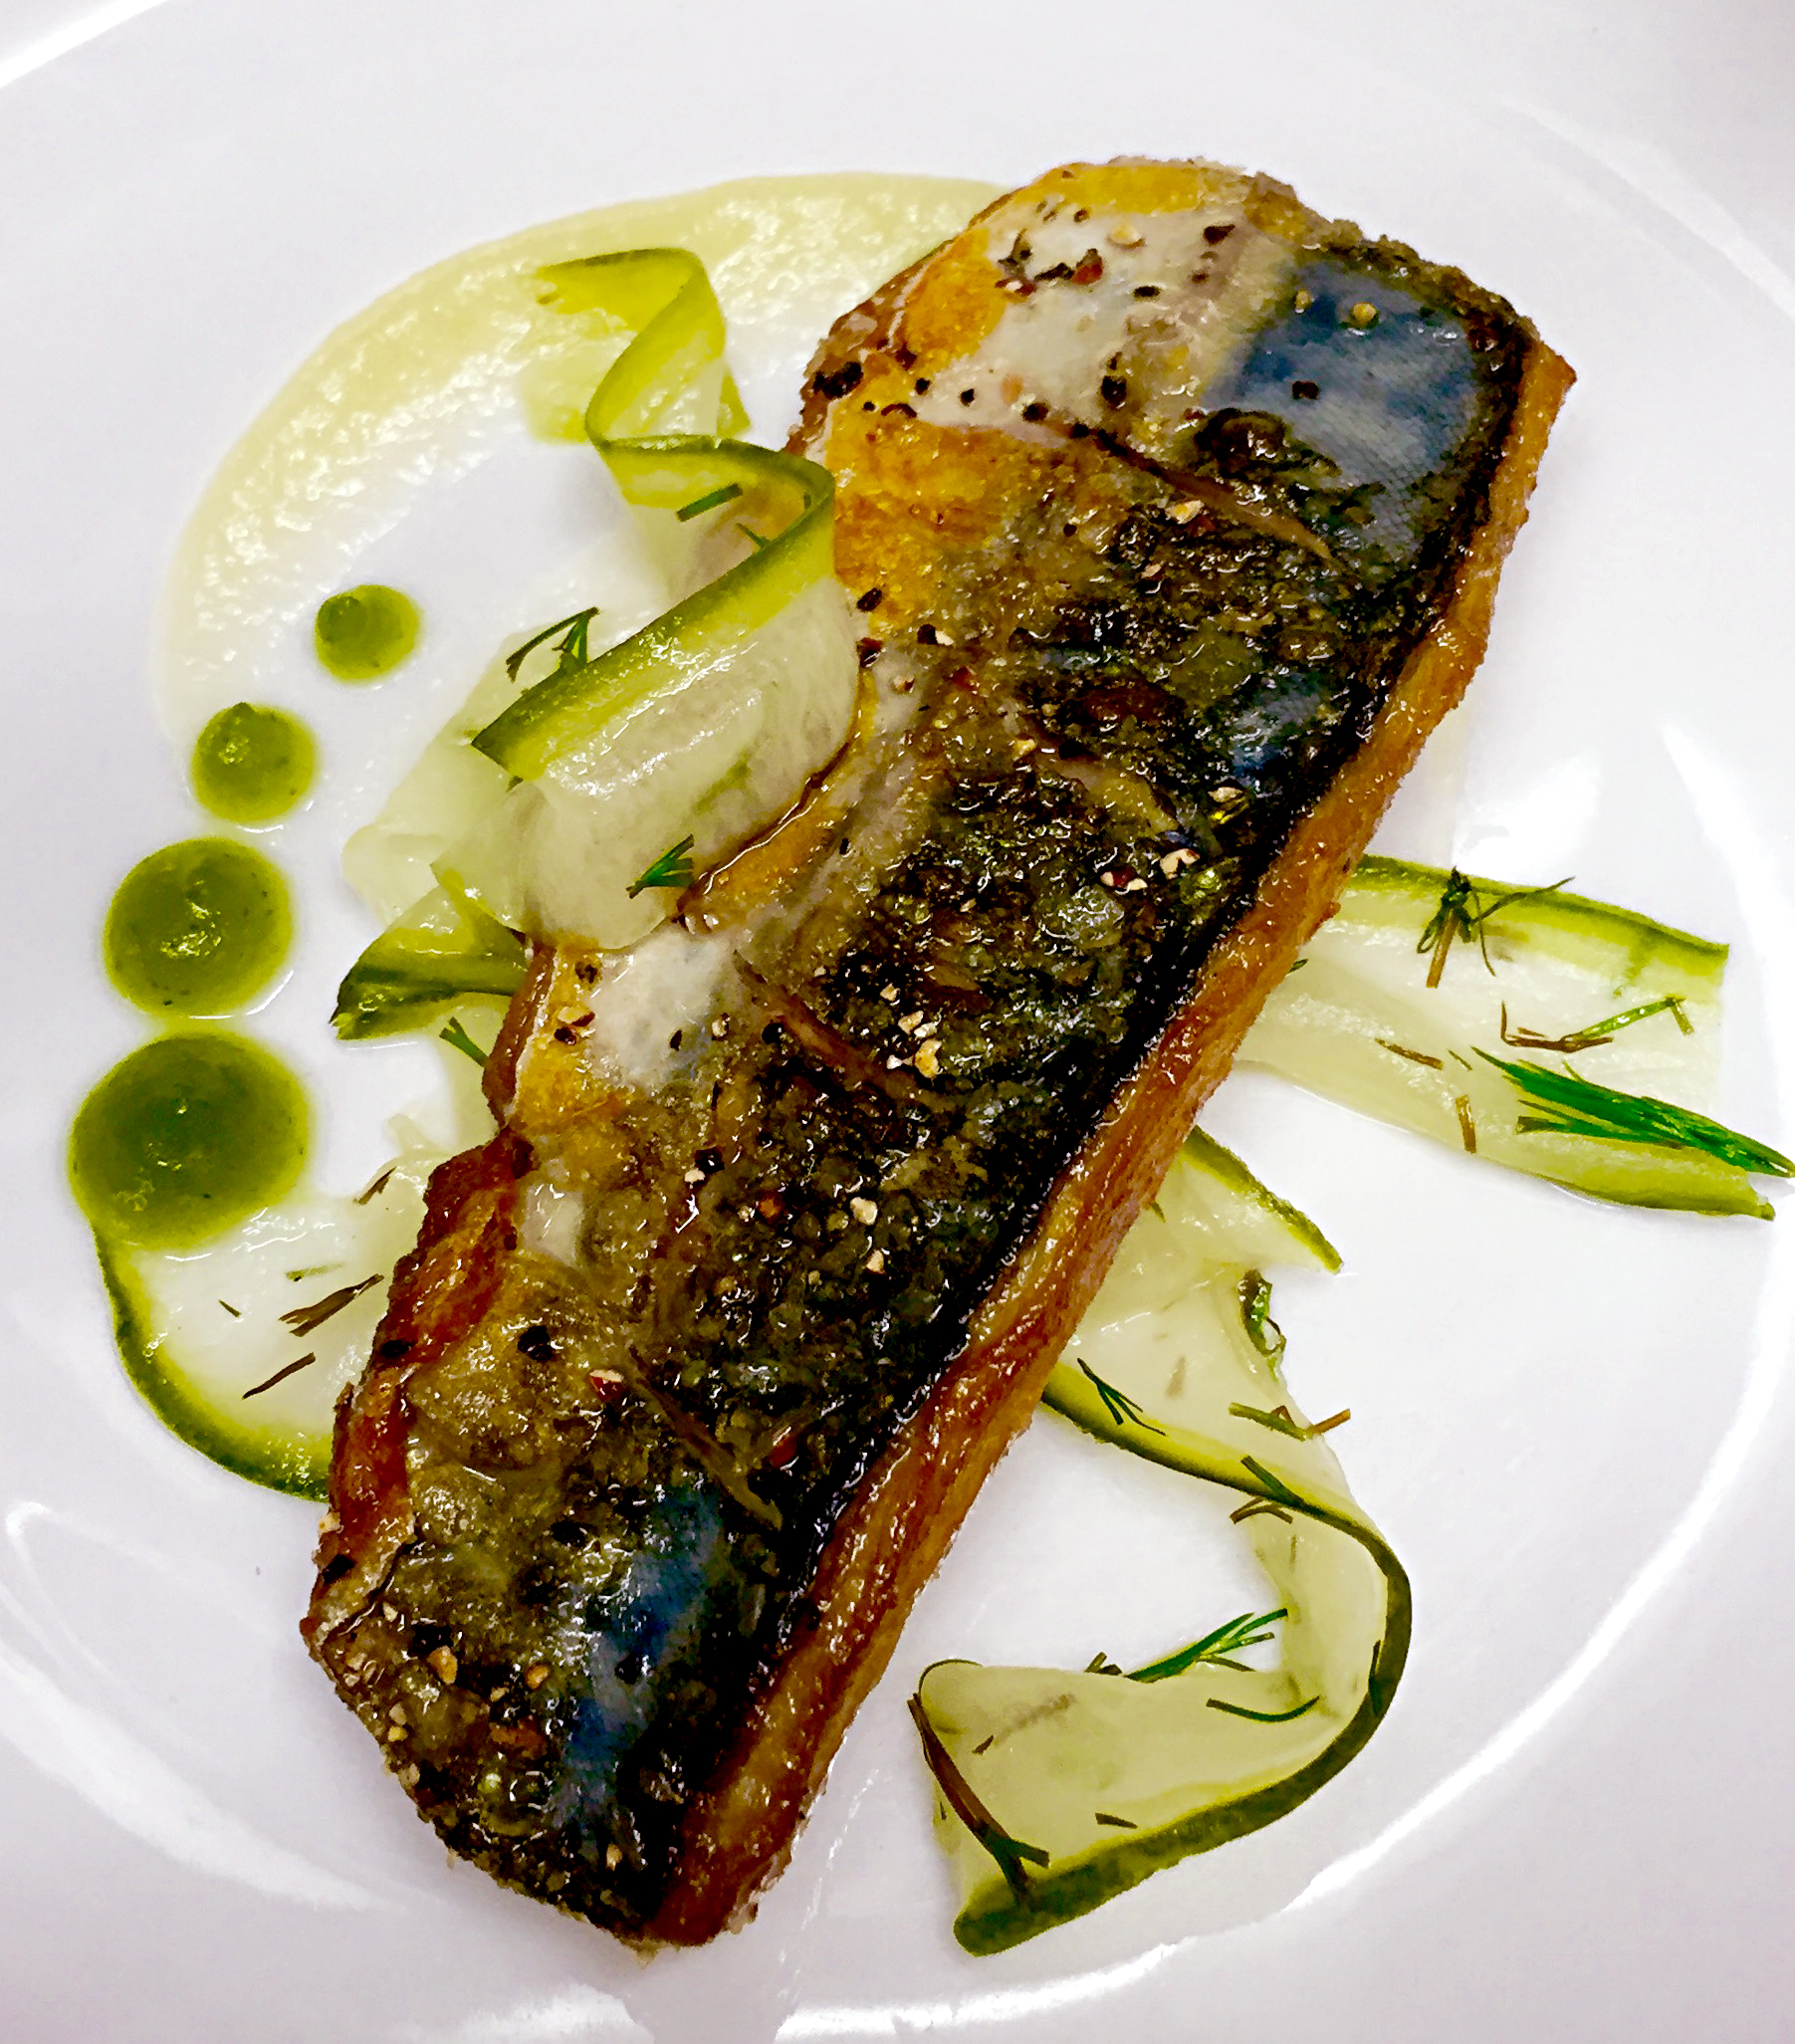 Pan fried fillet of Mackerel served with apple puree, dill pickled cucumber salad, dill gel & junipe